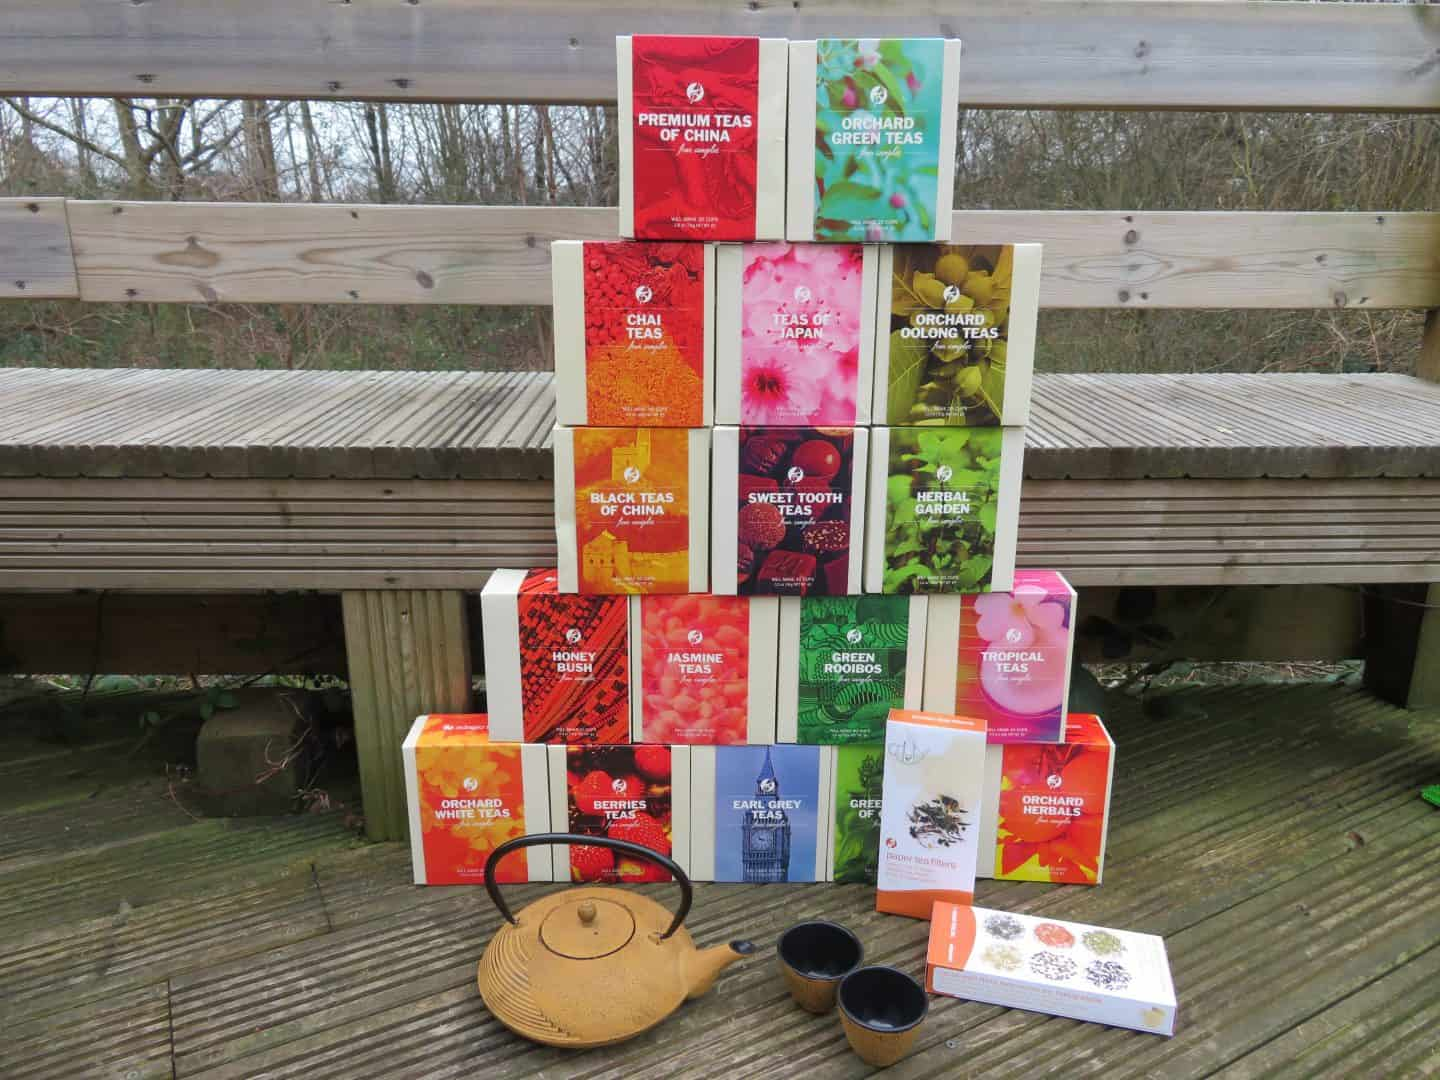 Win a teapot with cups and a vast selection of tea from Adagio